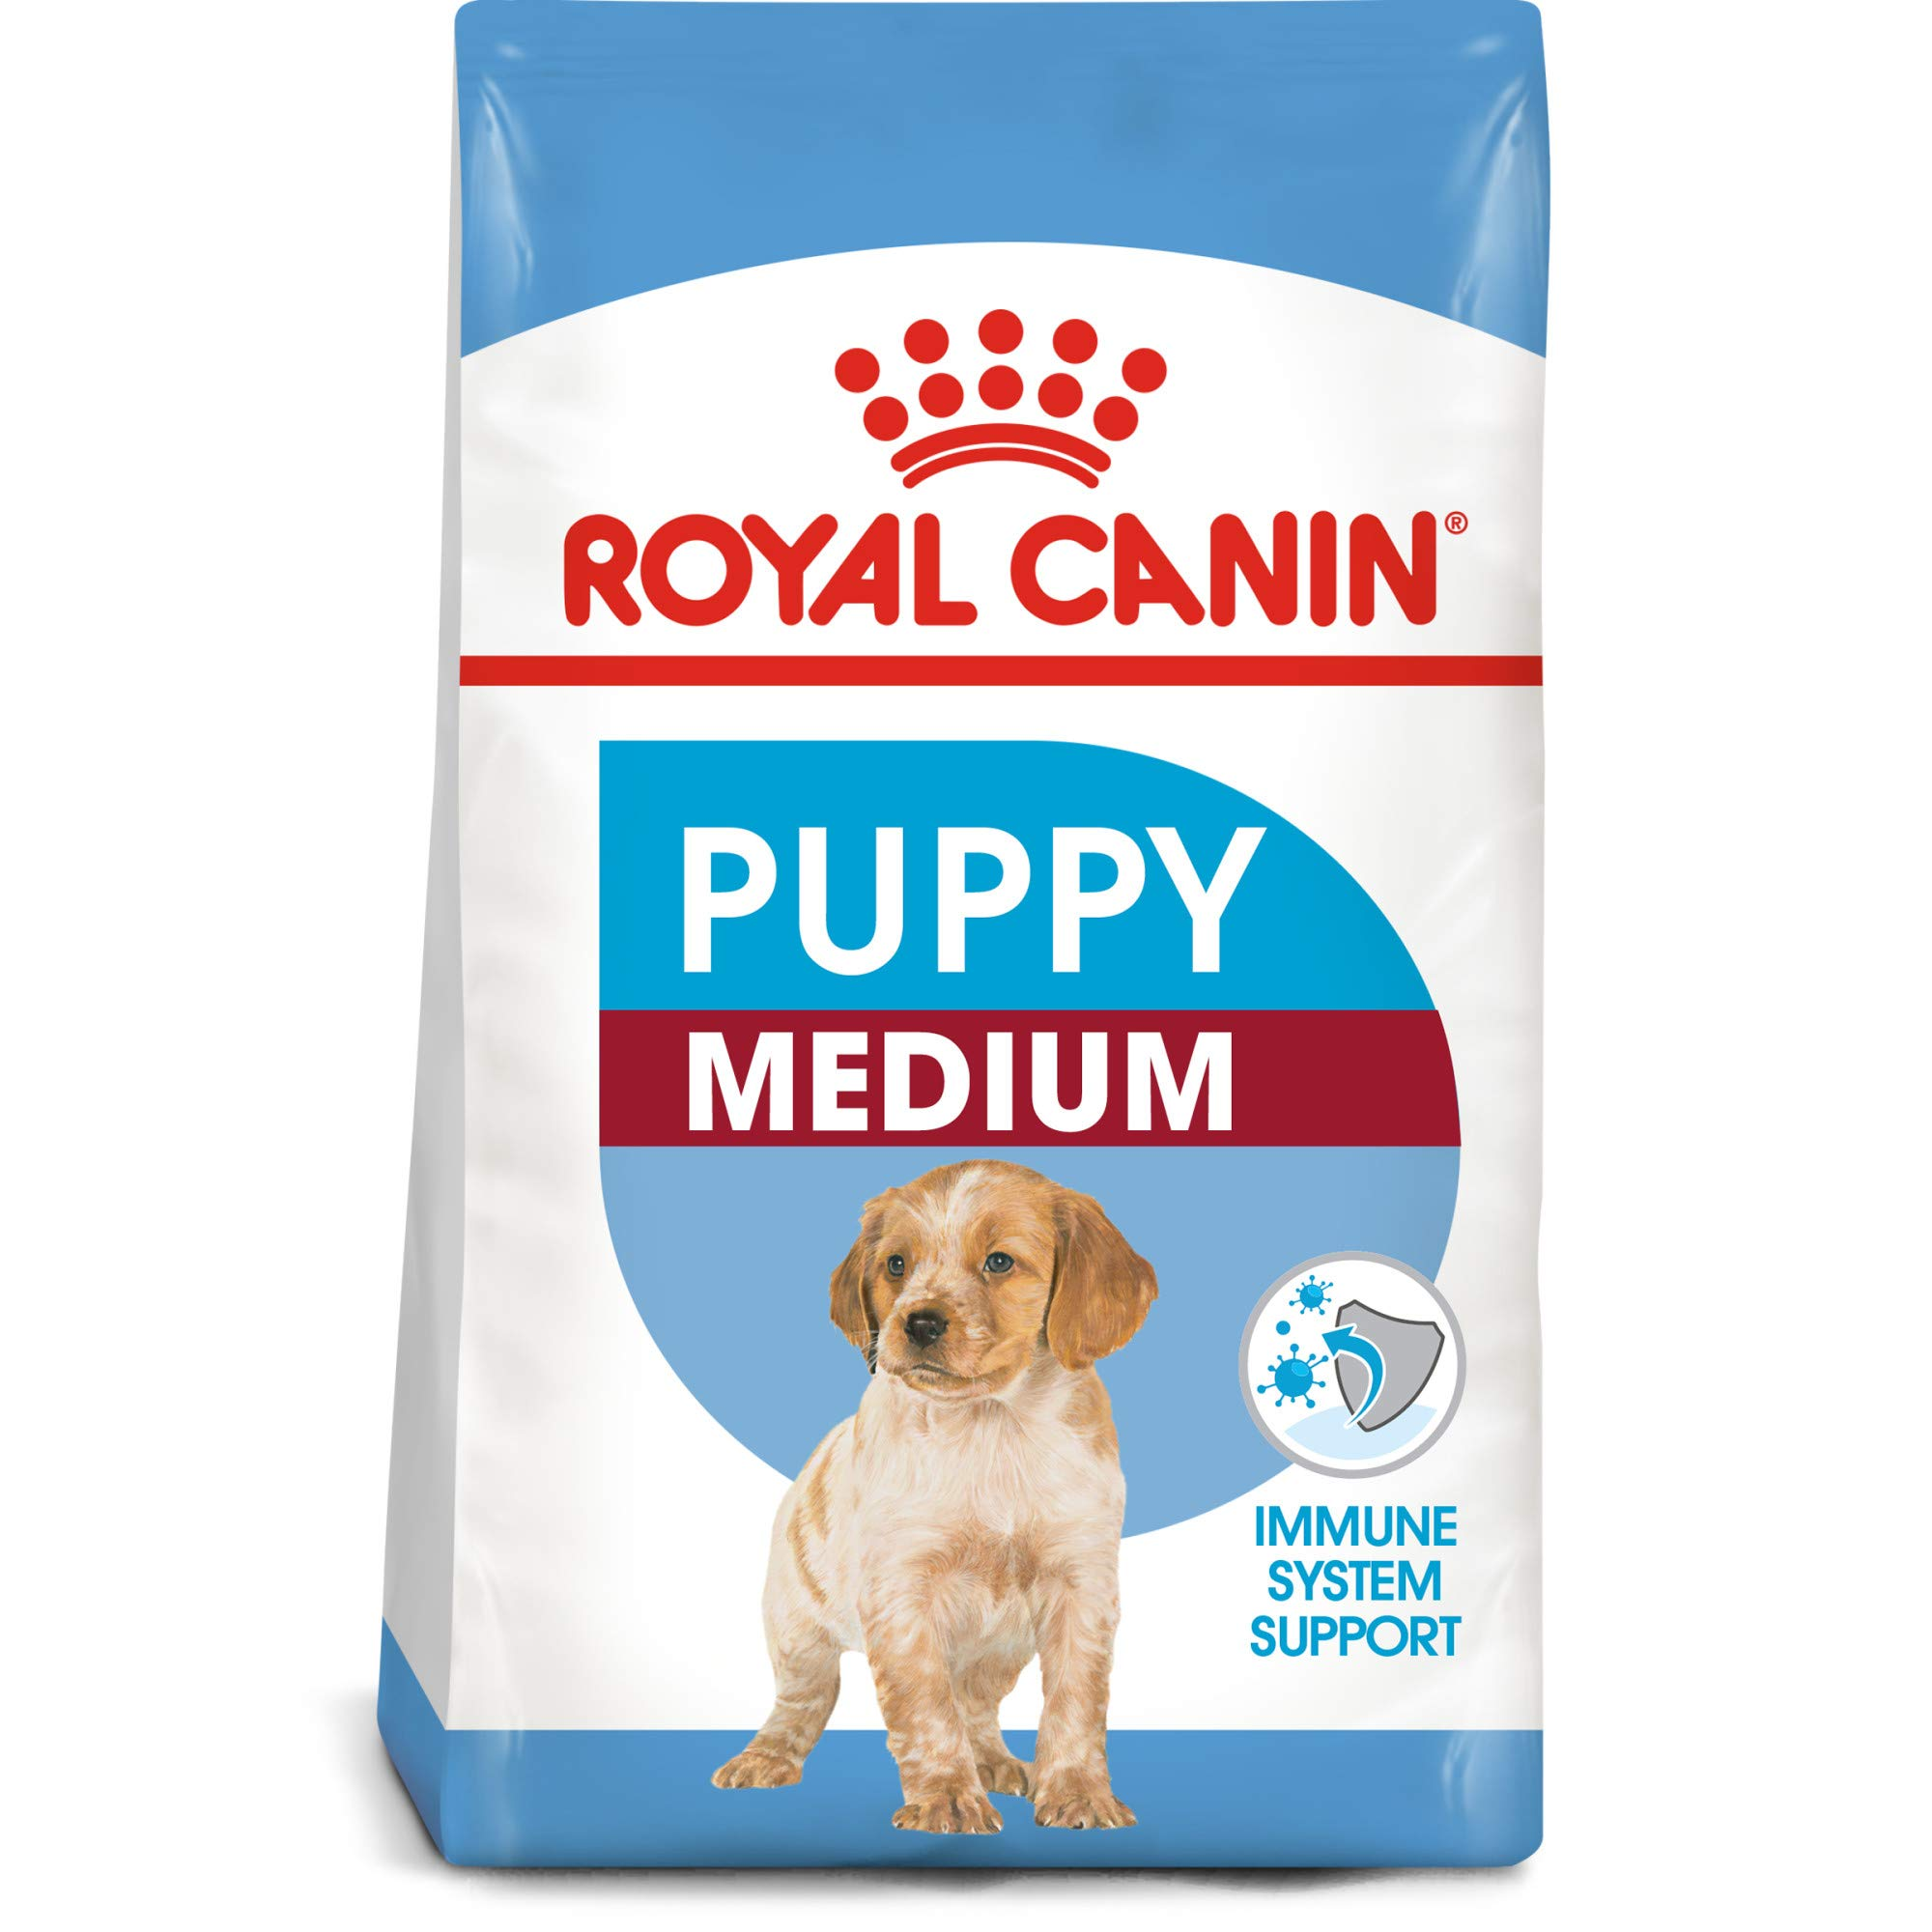 Royal Canin Medium Puppy Dry Dog Food, 30 Lb. by Royal Canin (Image #1)